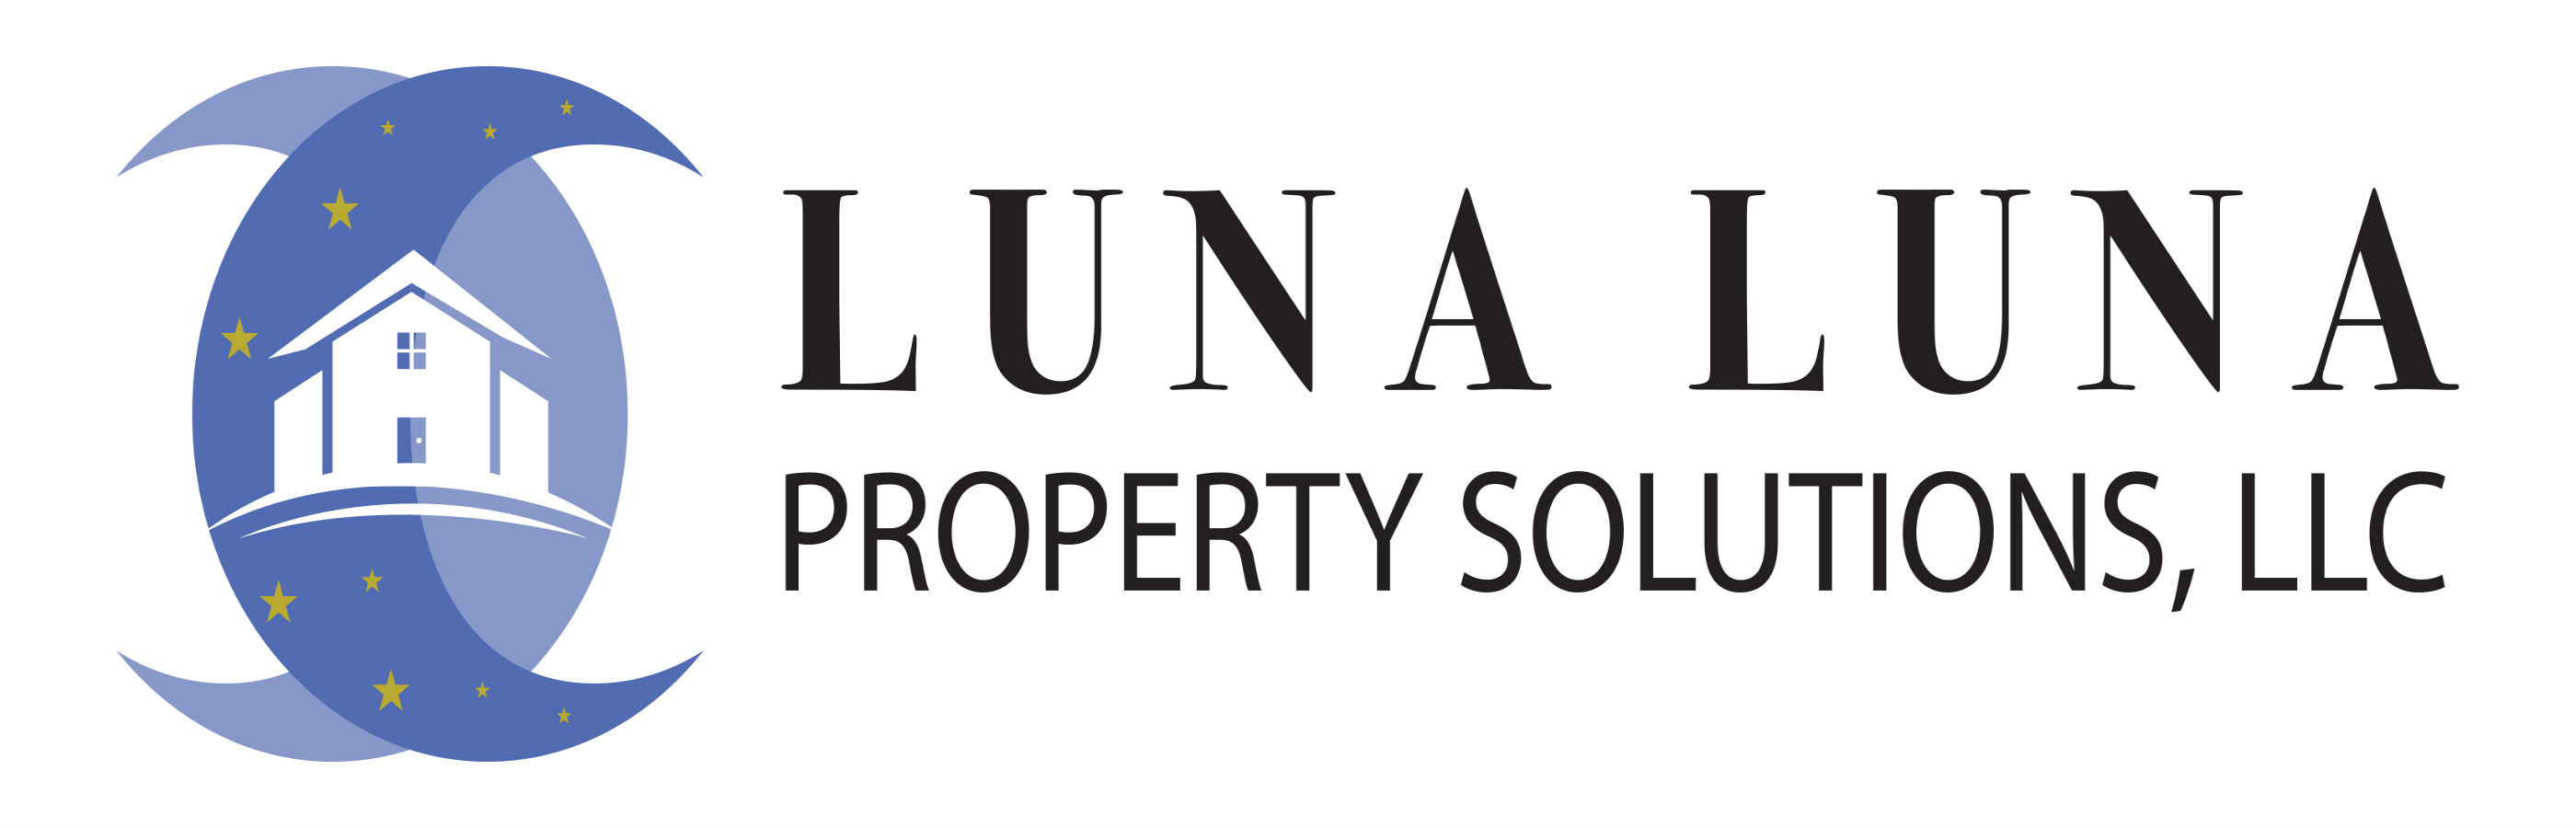 Luna Luna Property Solutions, LLC